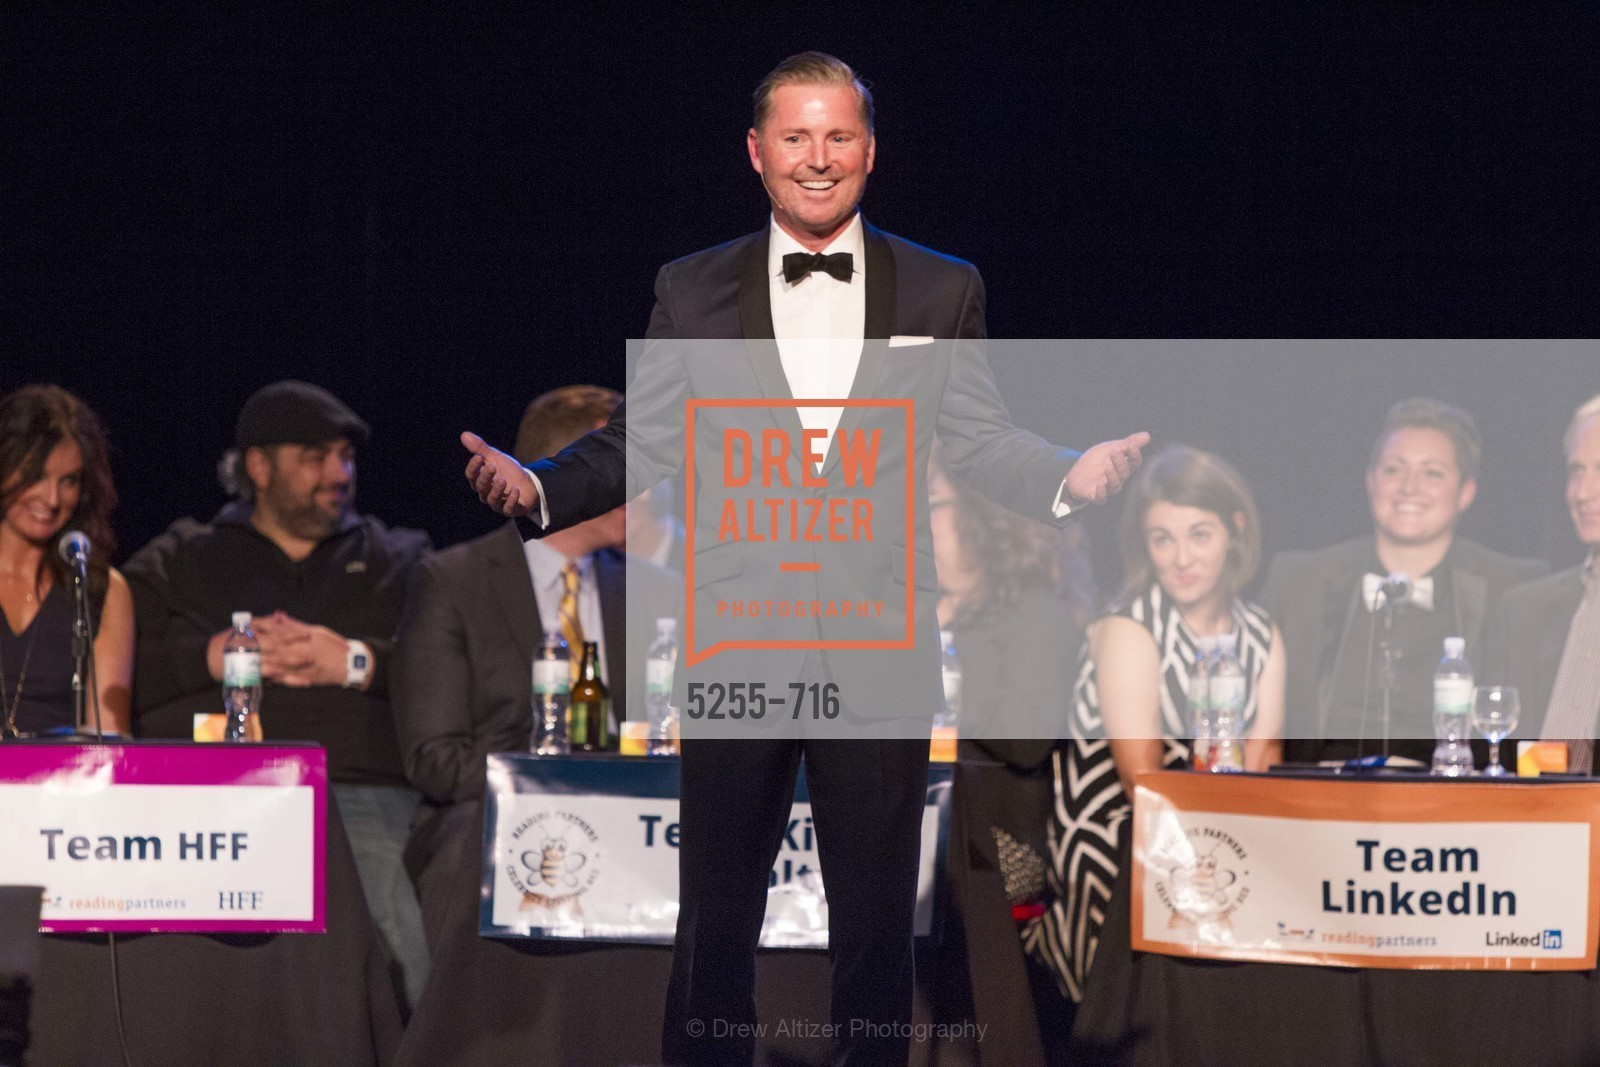 Doug Landis, READING PARTNERS BAY AREA Celebrity Spelling Bee, US, May 8th, 2015,Drew Altizer, Drew Altizer Photography, full-service agency, private events, San Francisco photographer, photographer california